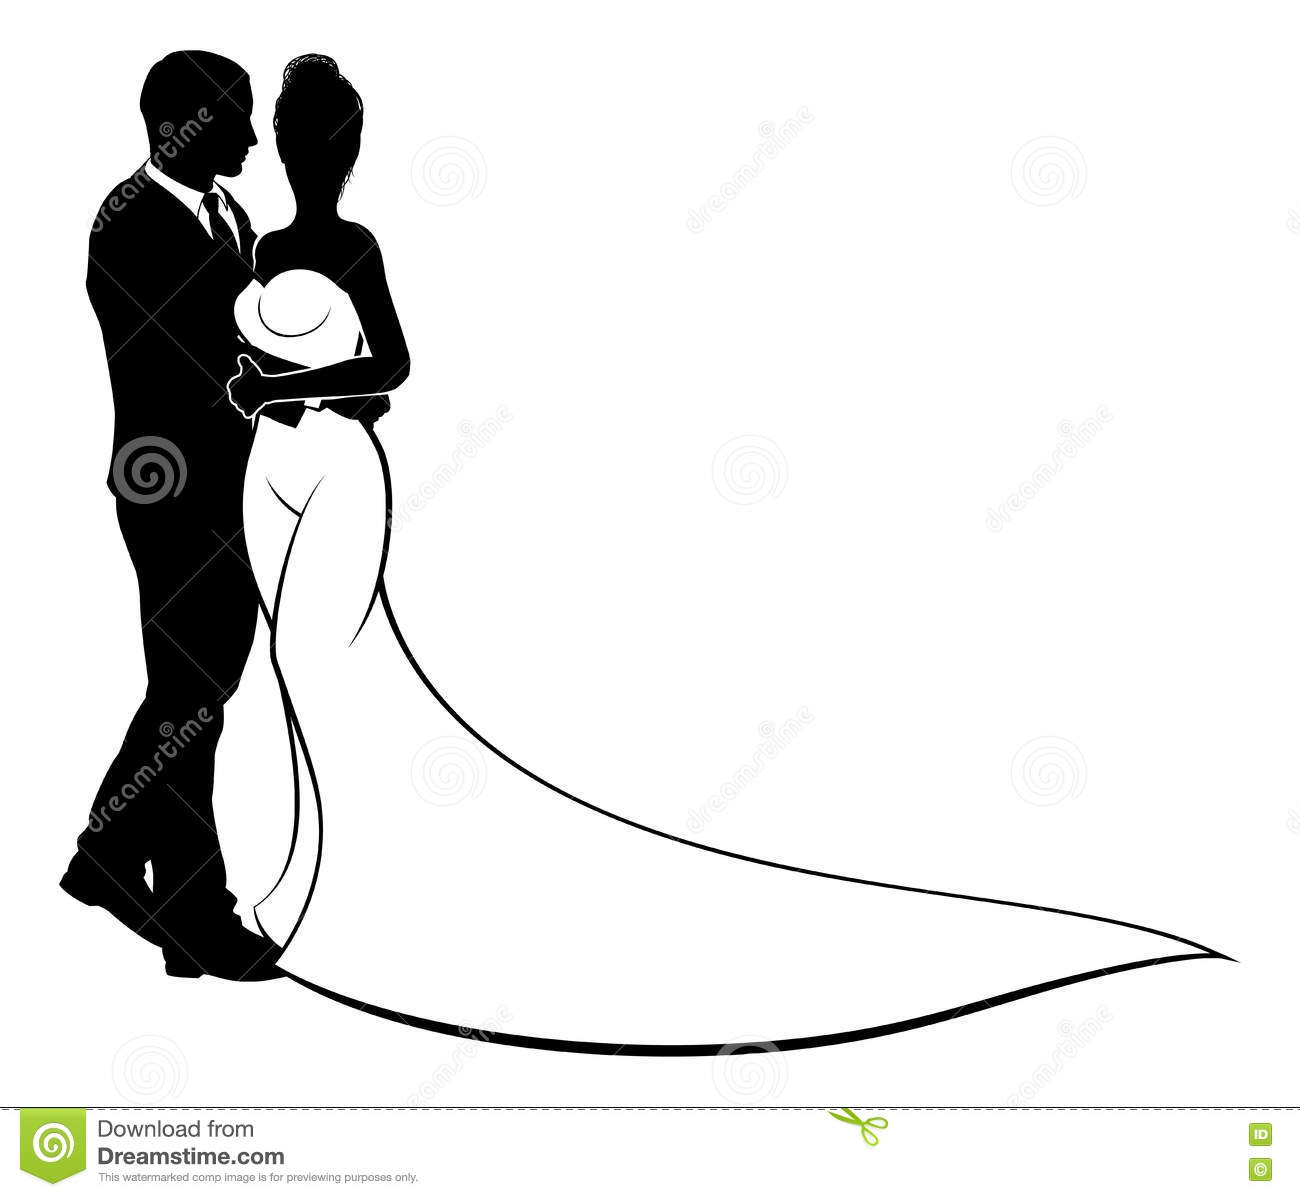 Bride and groom couple wedding silhouette stock vector image royalty free vector download bride and groom couple wedding silhouette junglespirit Choice Image